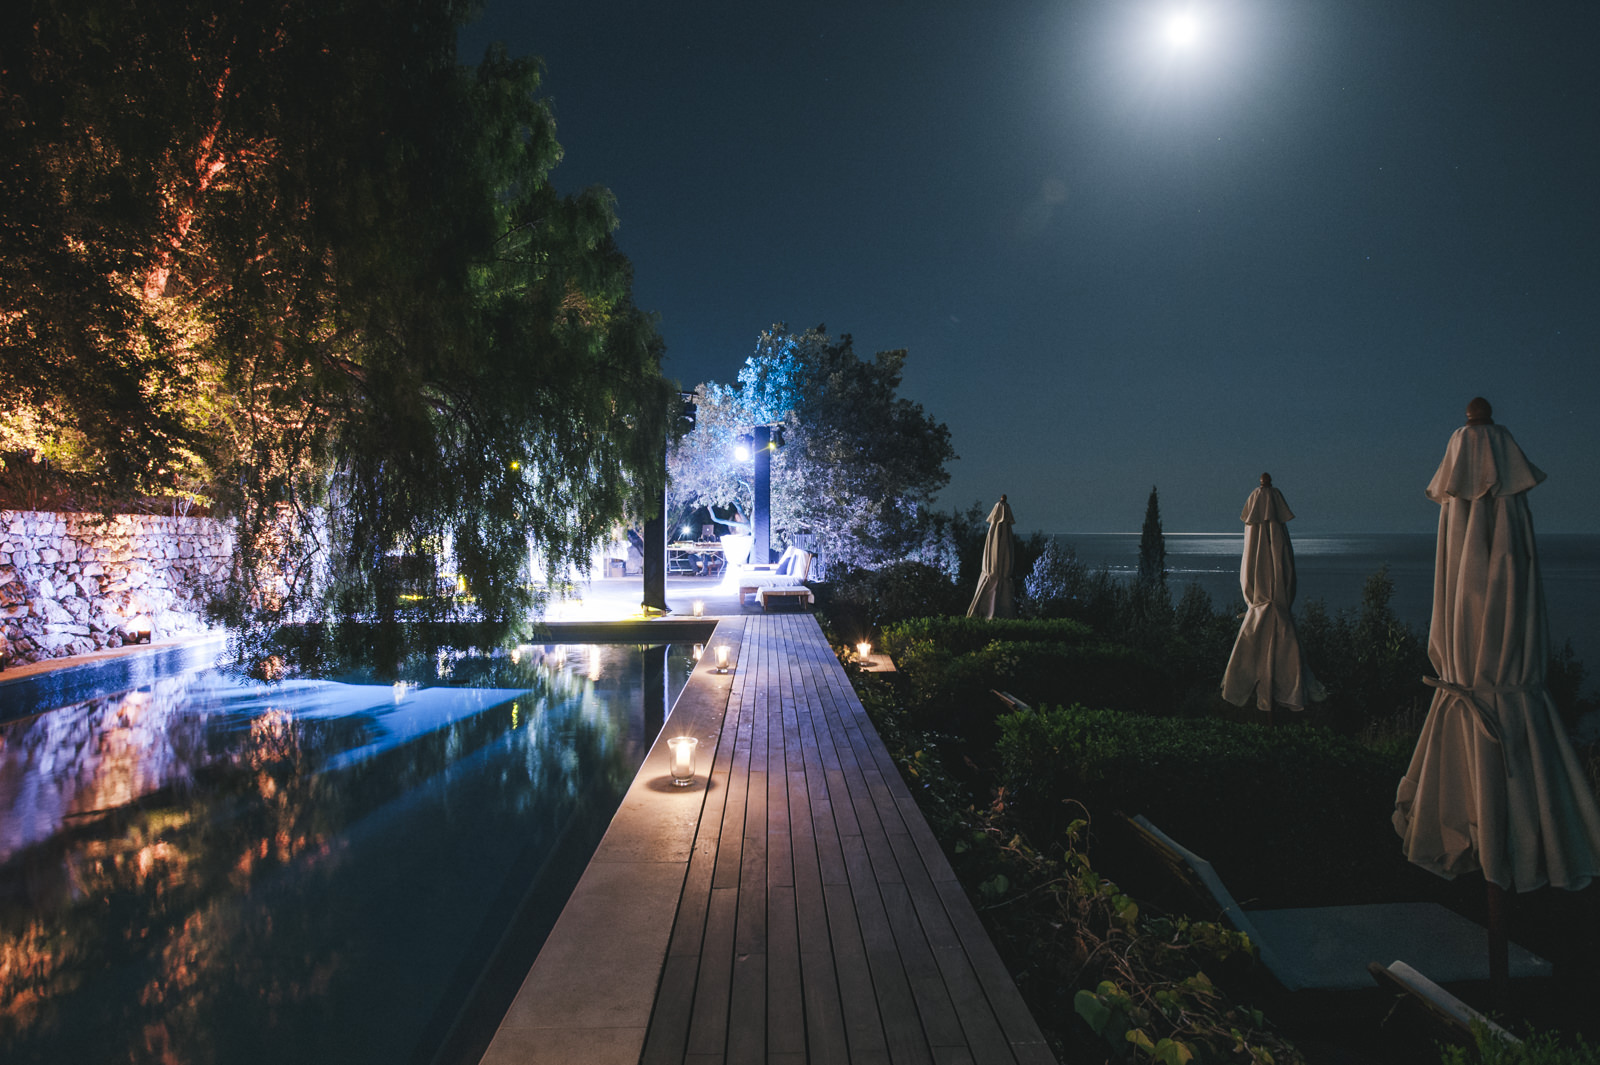 the pool of casa privata by night